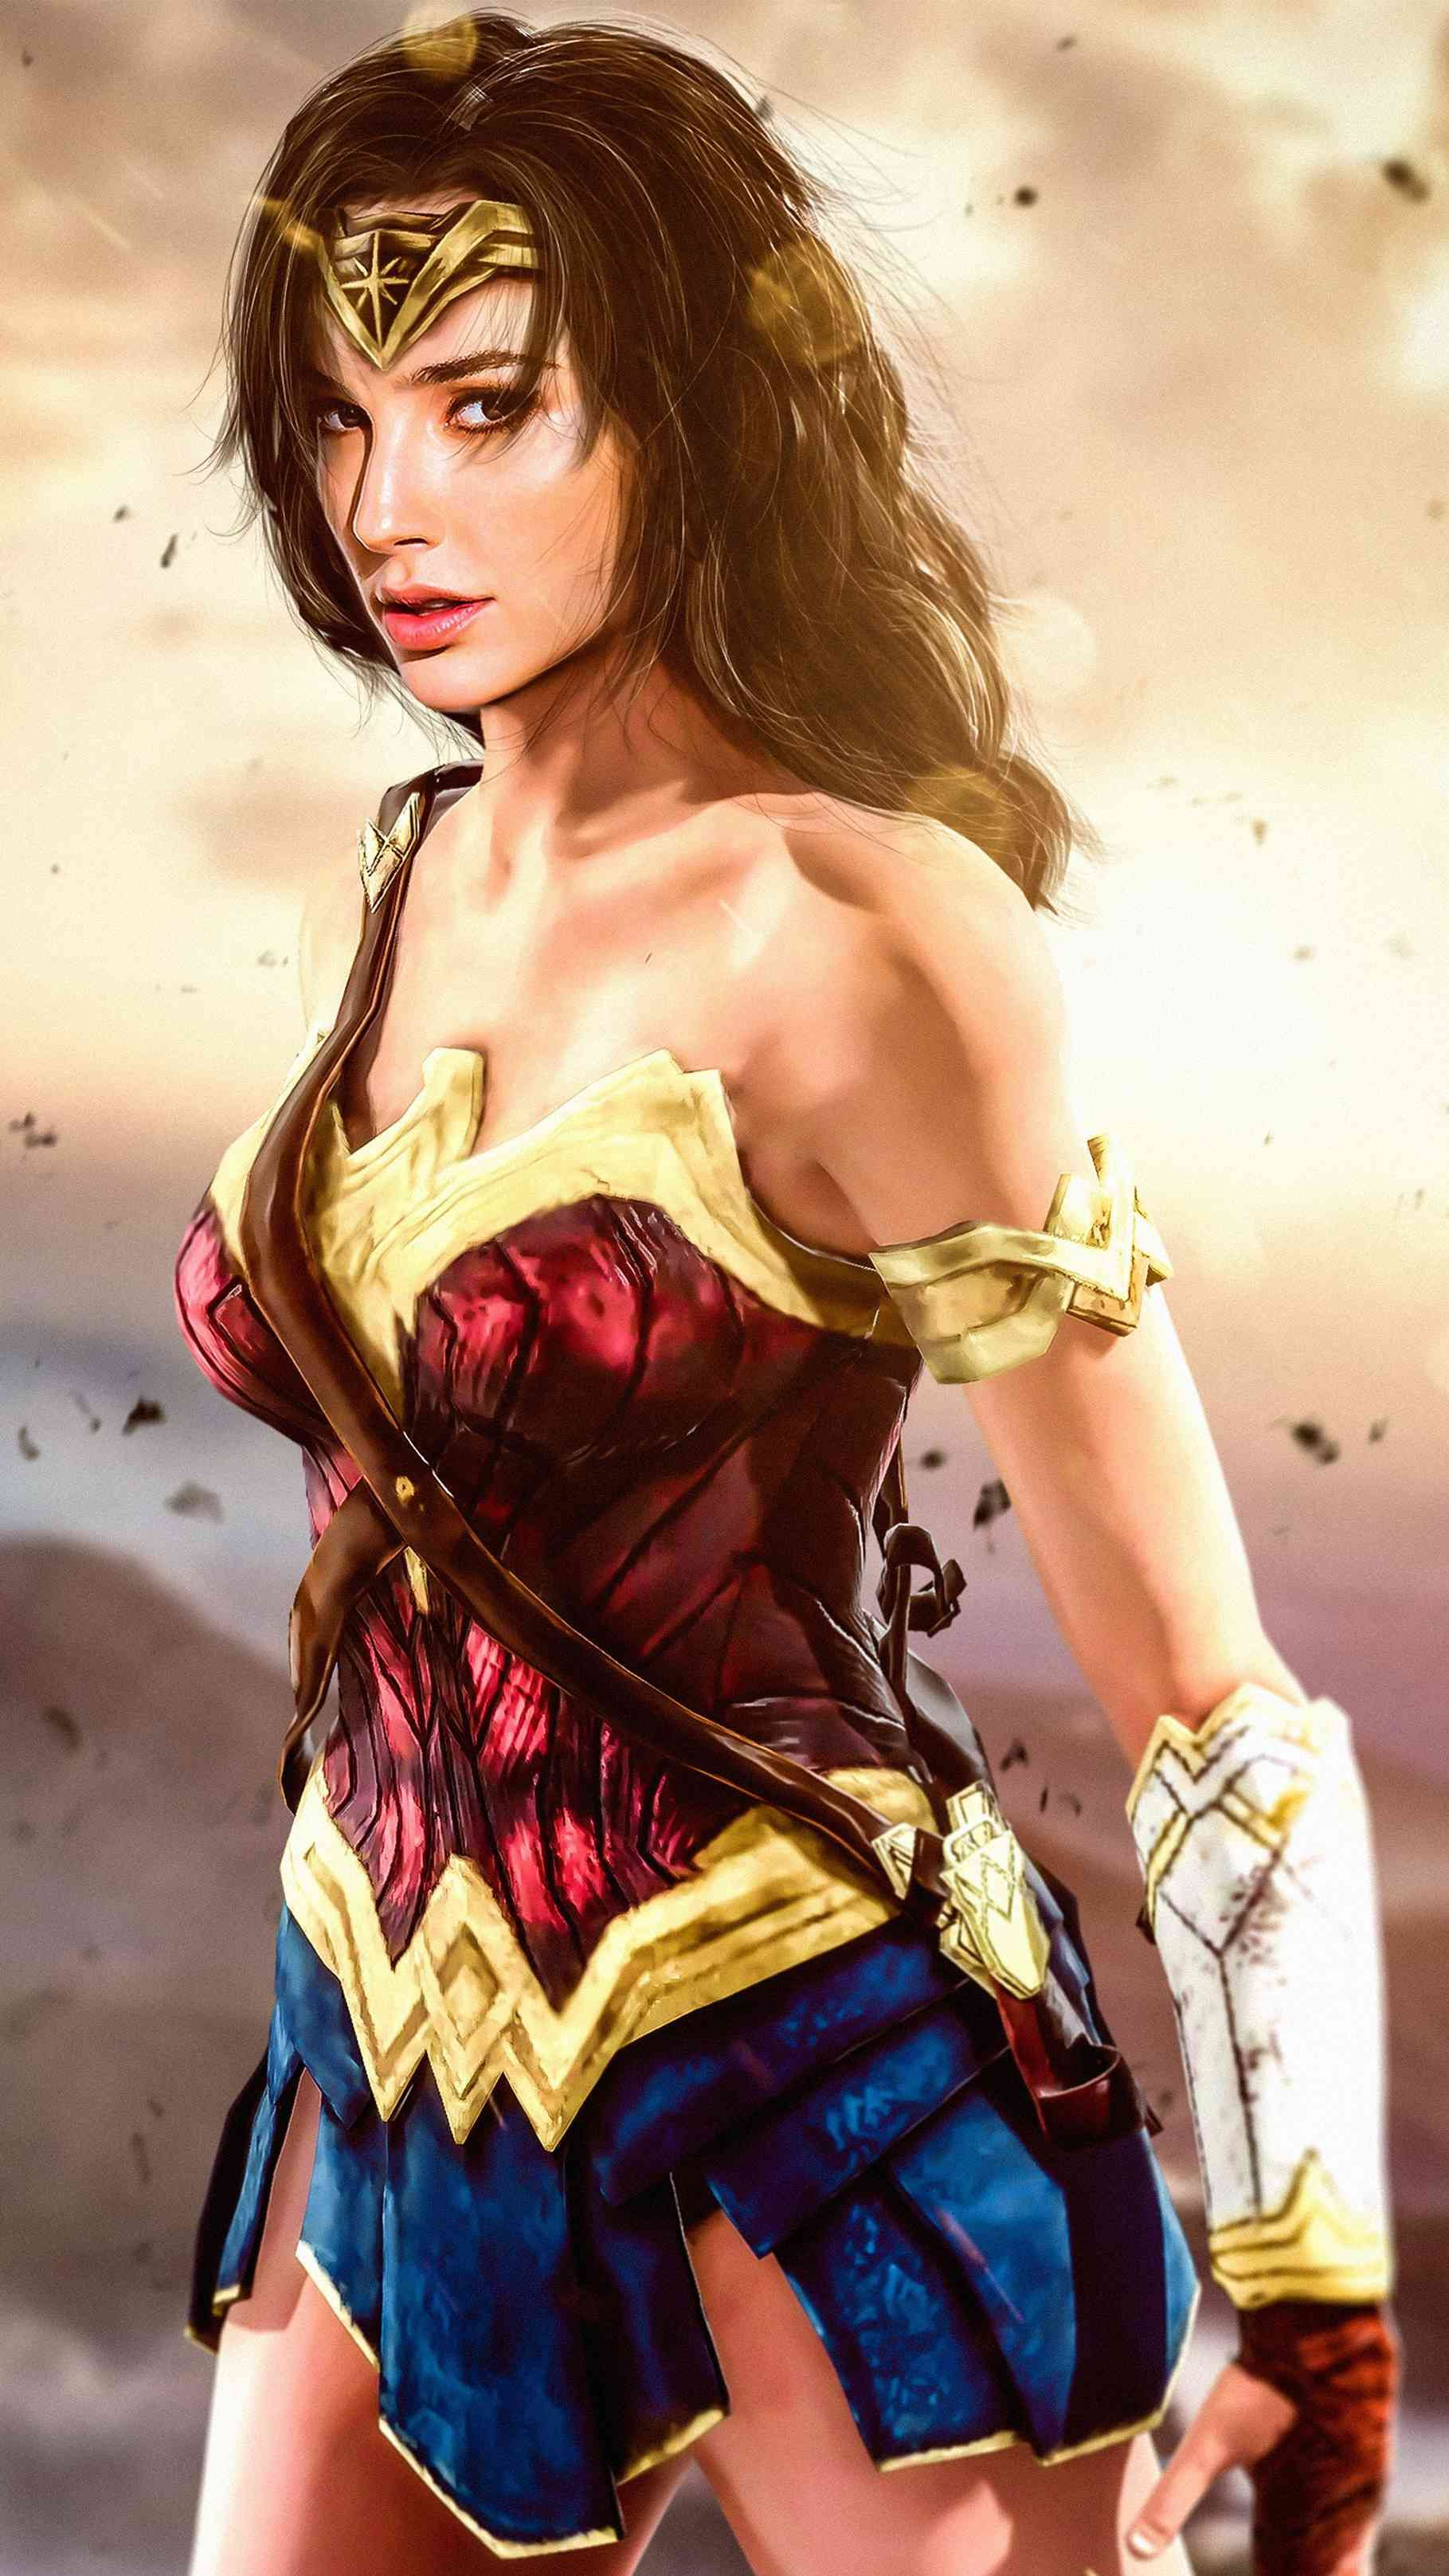 Wonder Woman Hd Wallpaper Wonder Woman Wonder Woman Art Gal Gadot Wonder Woman